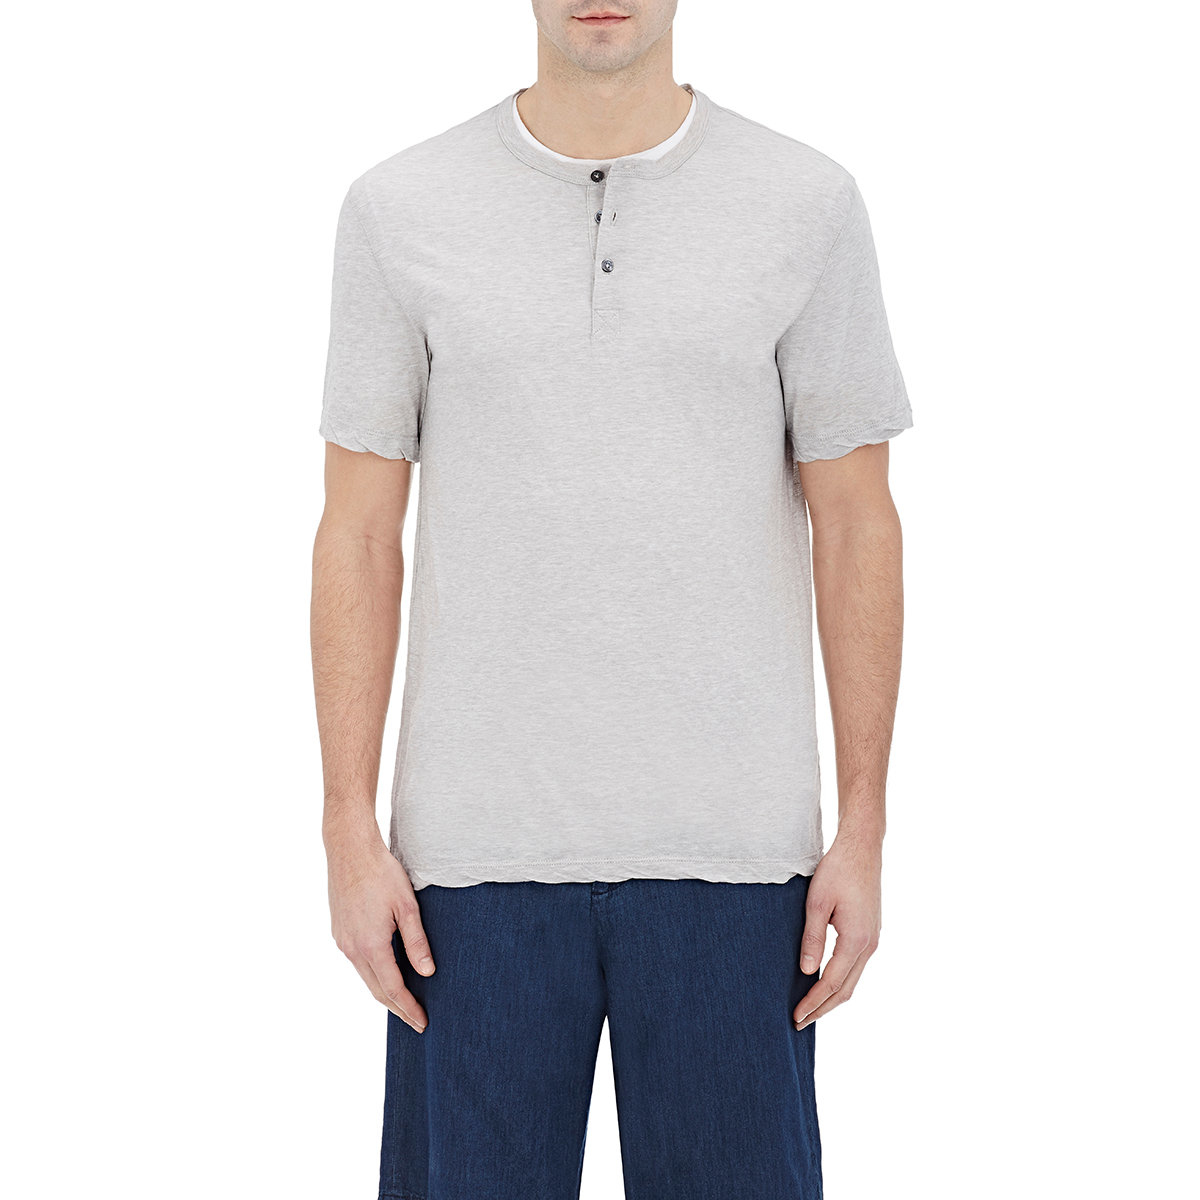 Lyst james perse short sleeve henley in gray for men for James perse henley shirt